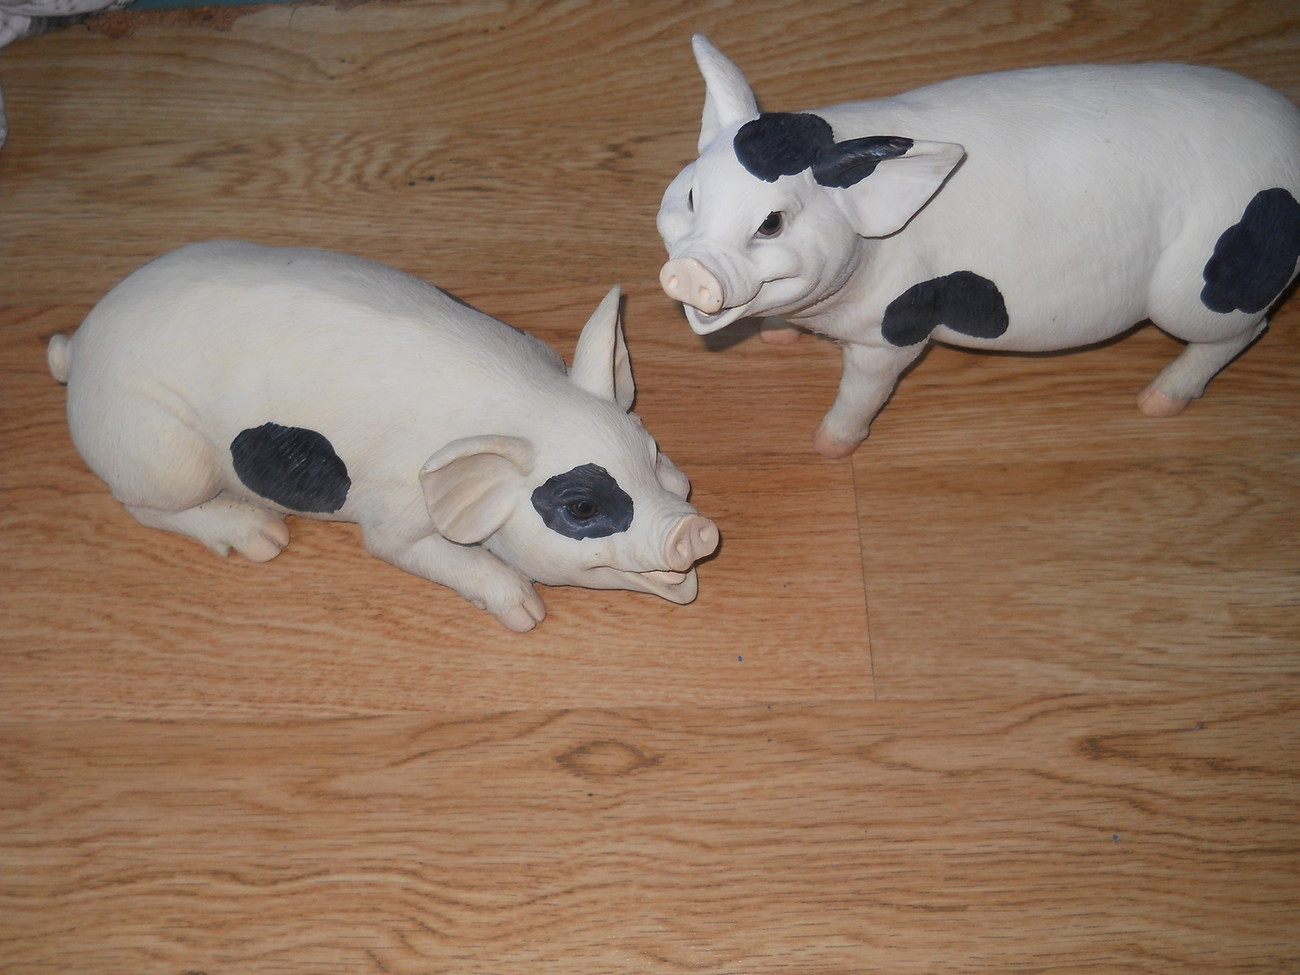 Set of 2 Resin Spotted Pigs Standing Laying Down Indoor Large Cute Playful Spot